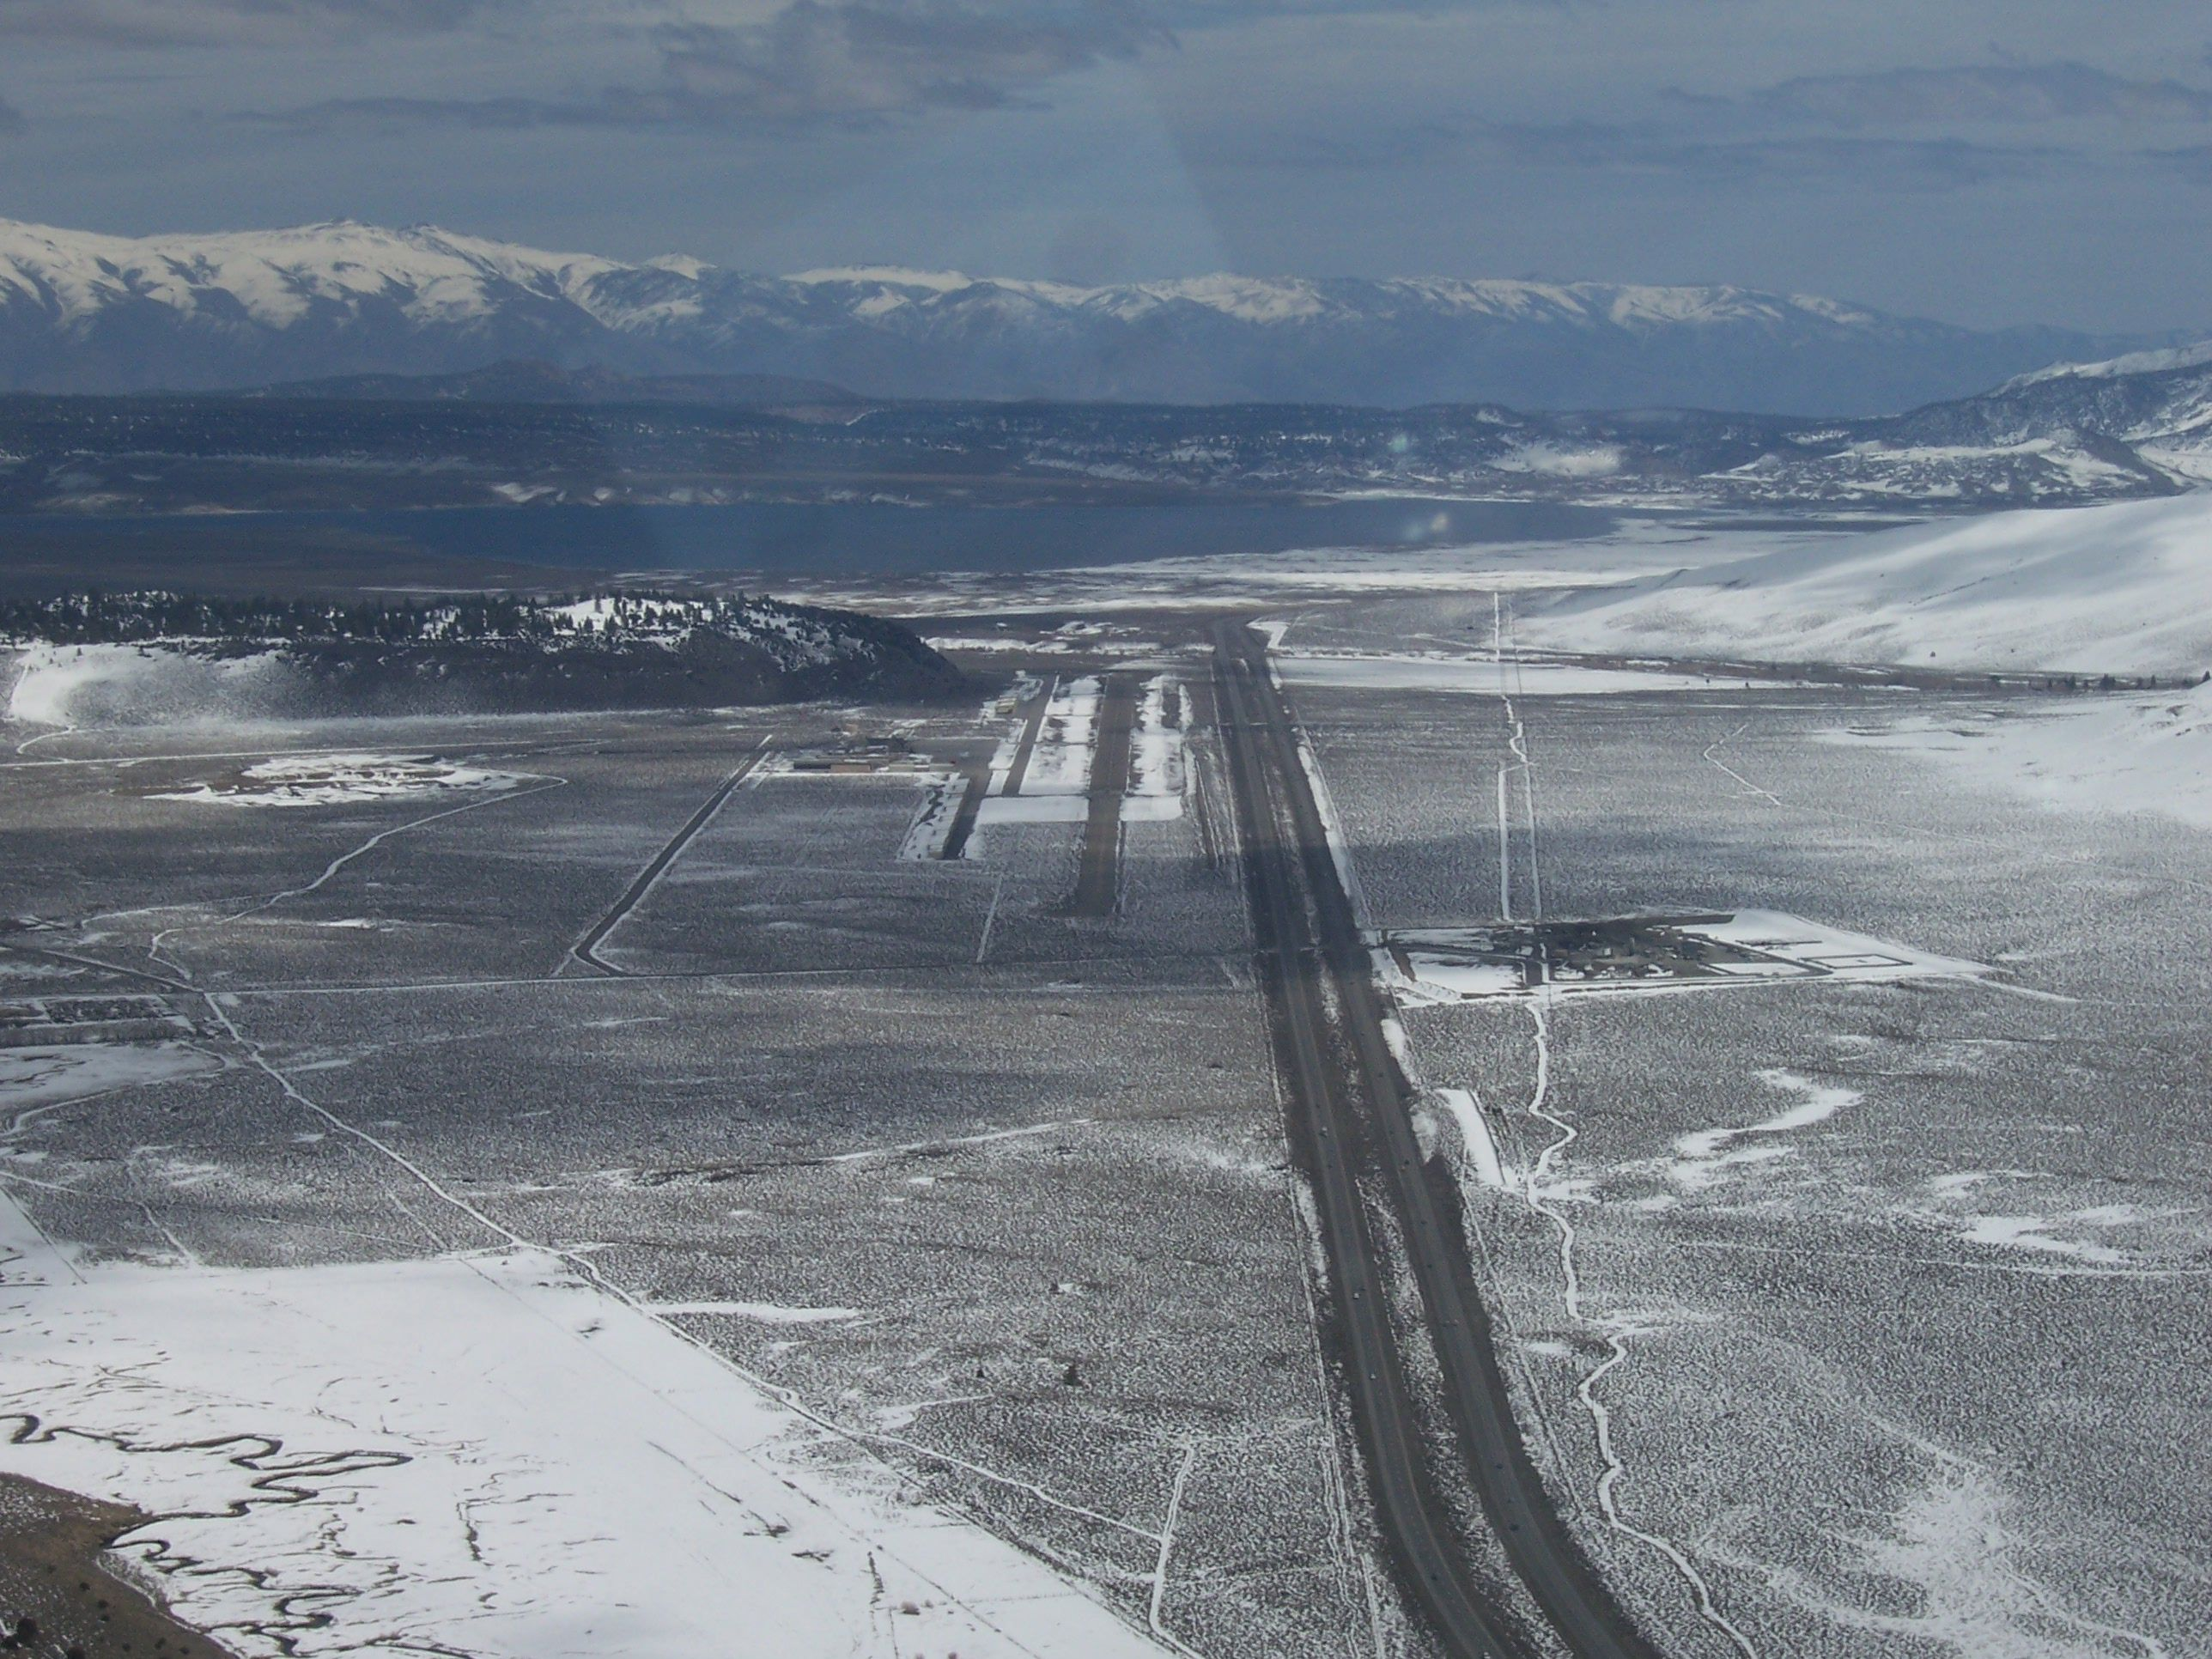 Approaching the Mammoth Lakes Airport just past Mammoth